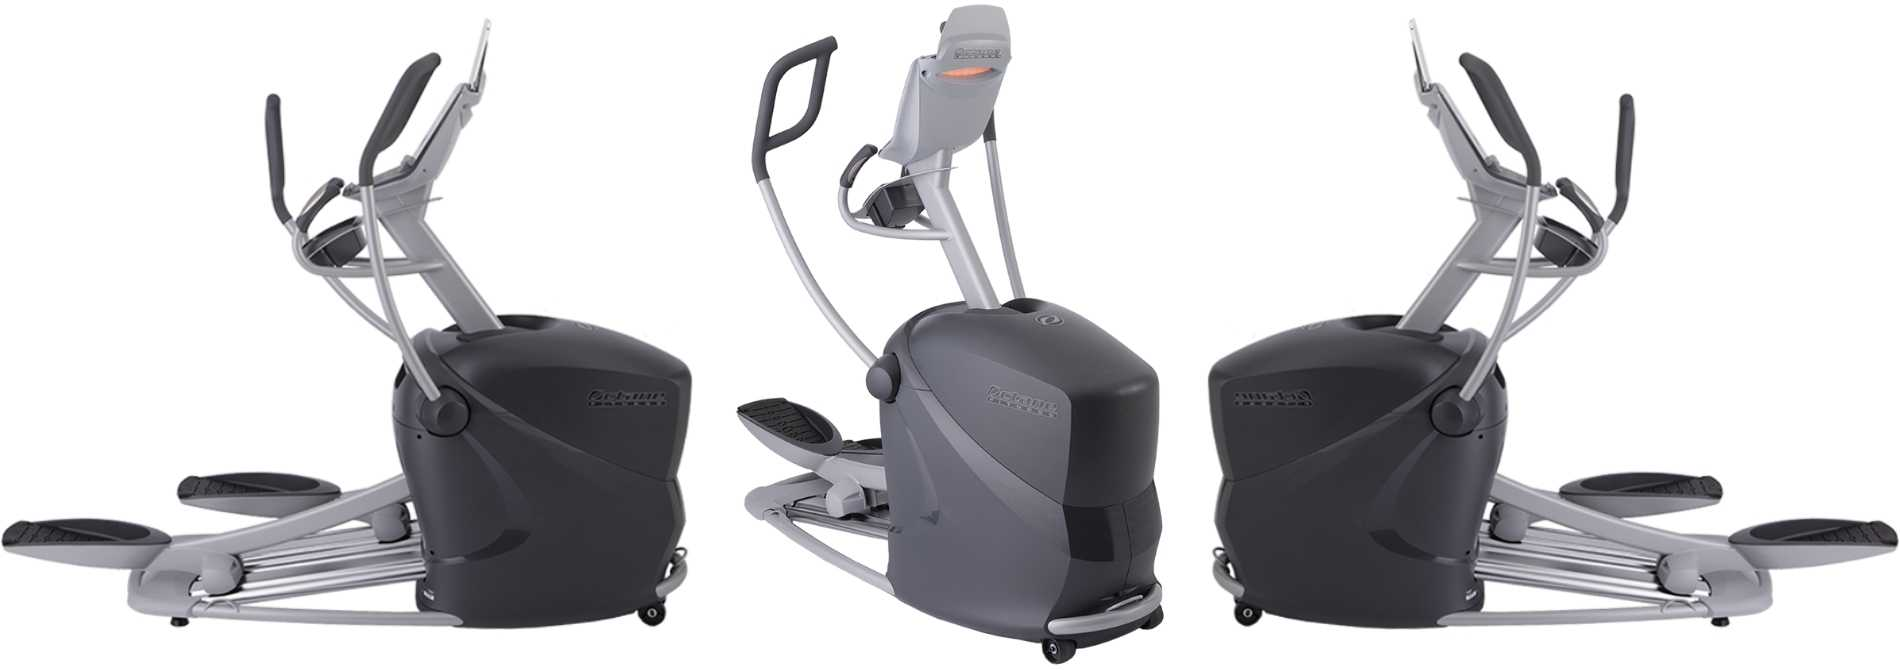 Octane-Standing-Elliptical-Q37-Overview